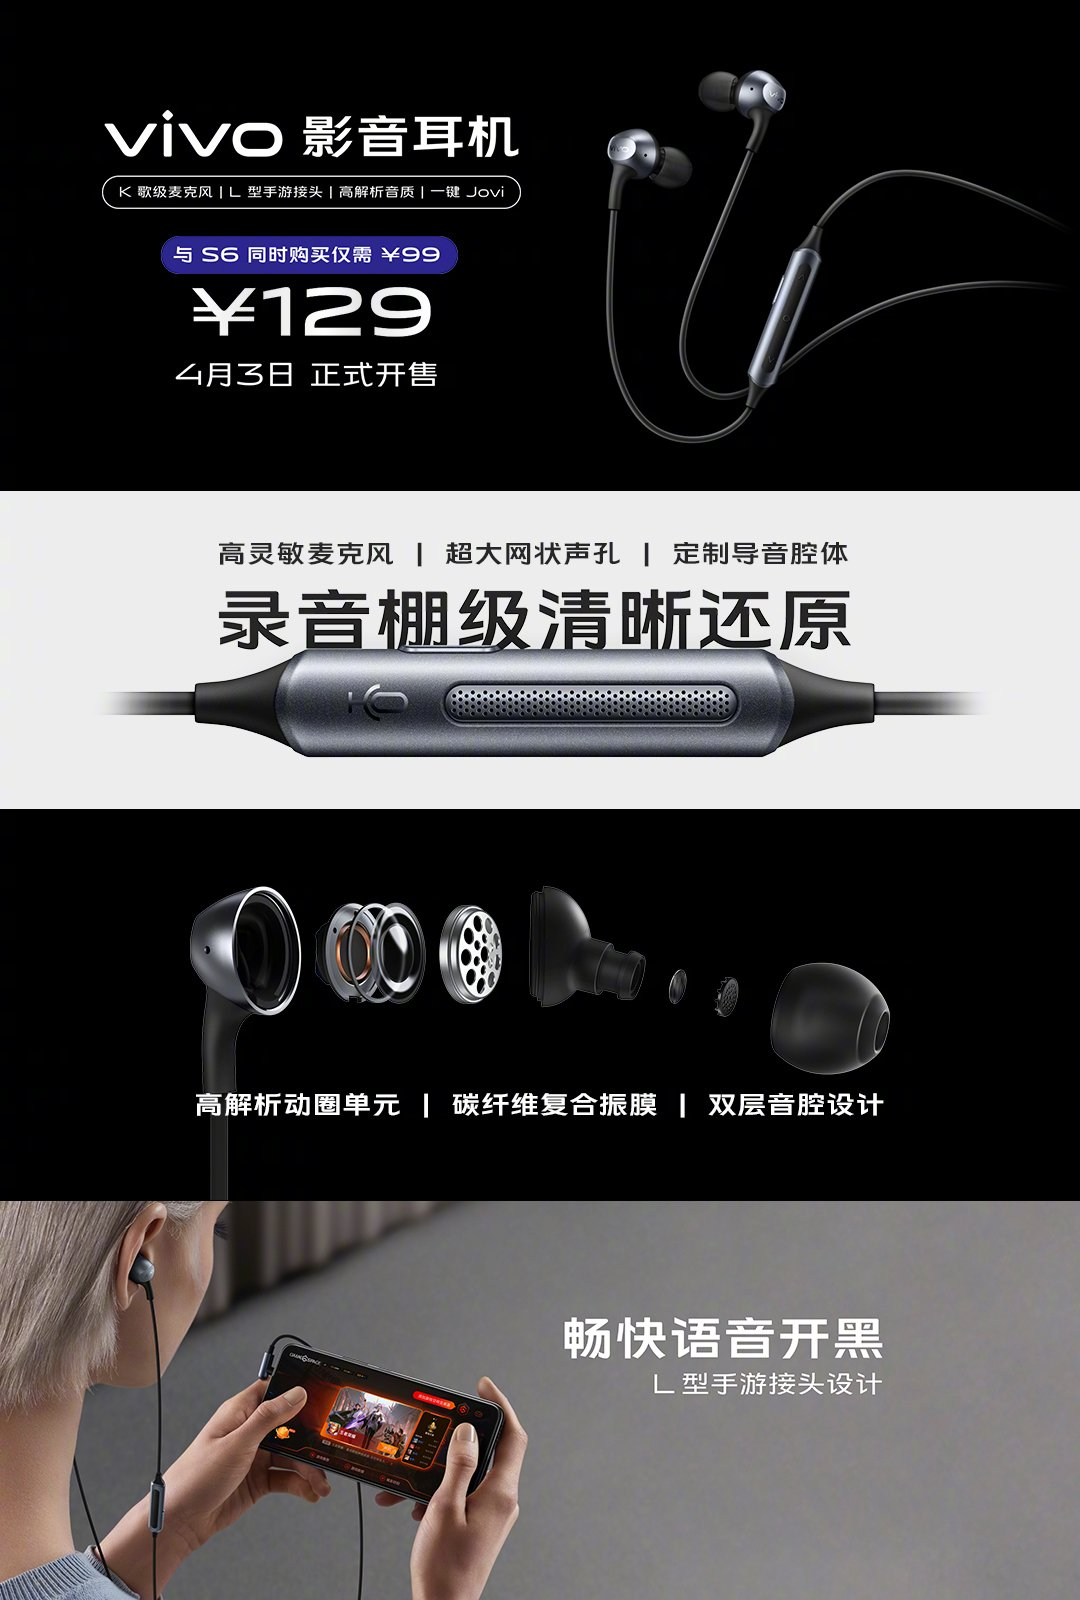 Vivo announces new Wired Earphones with MEMS Microphone